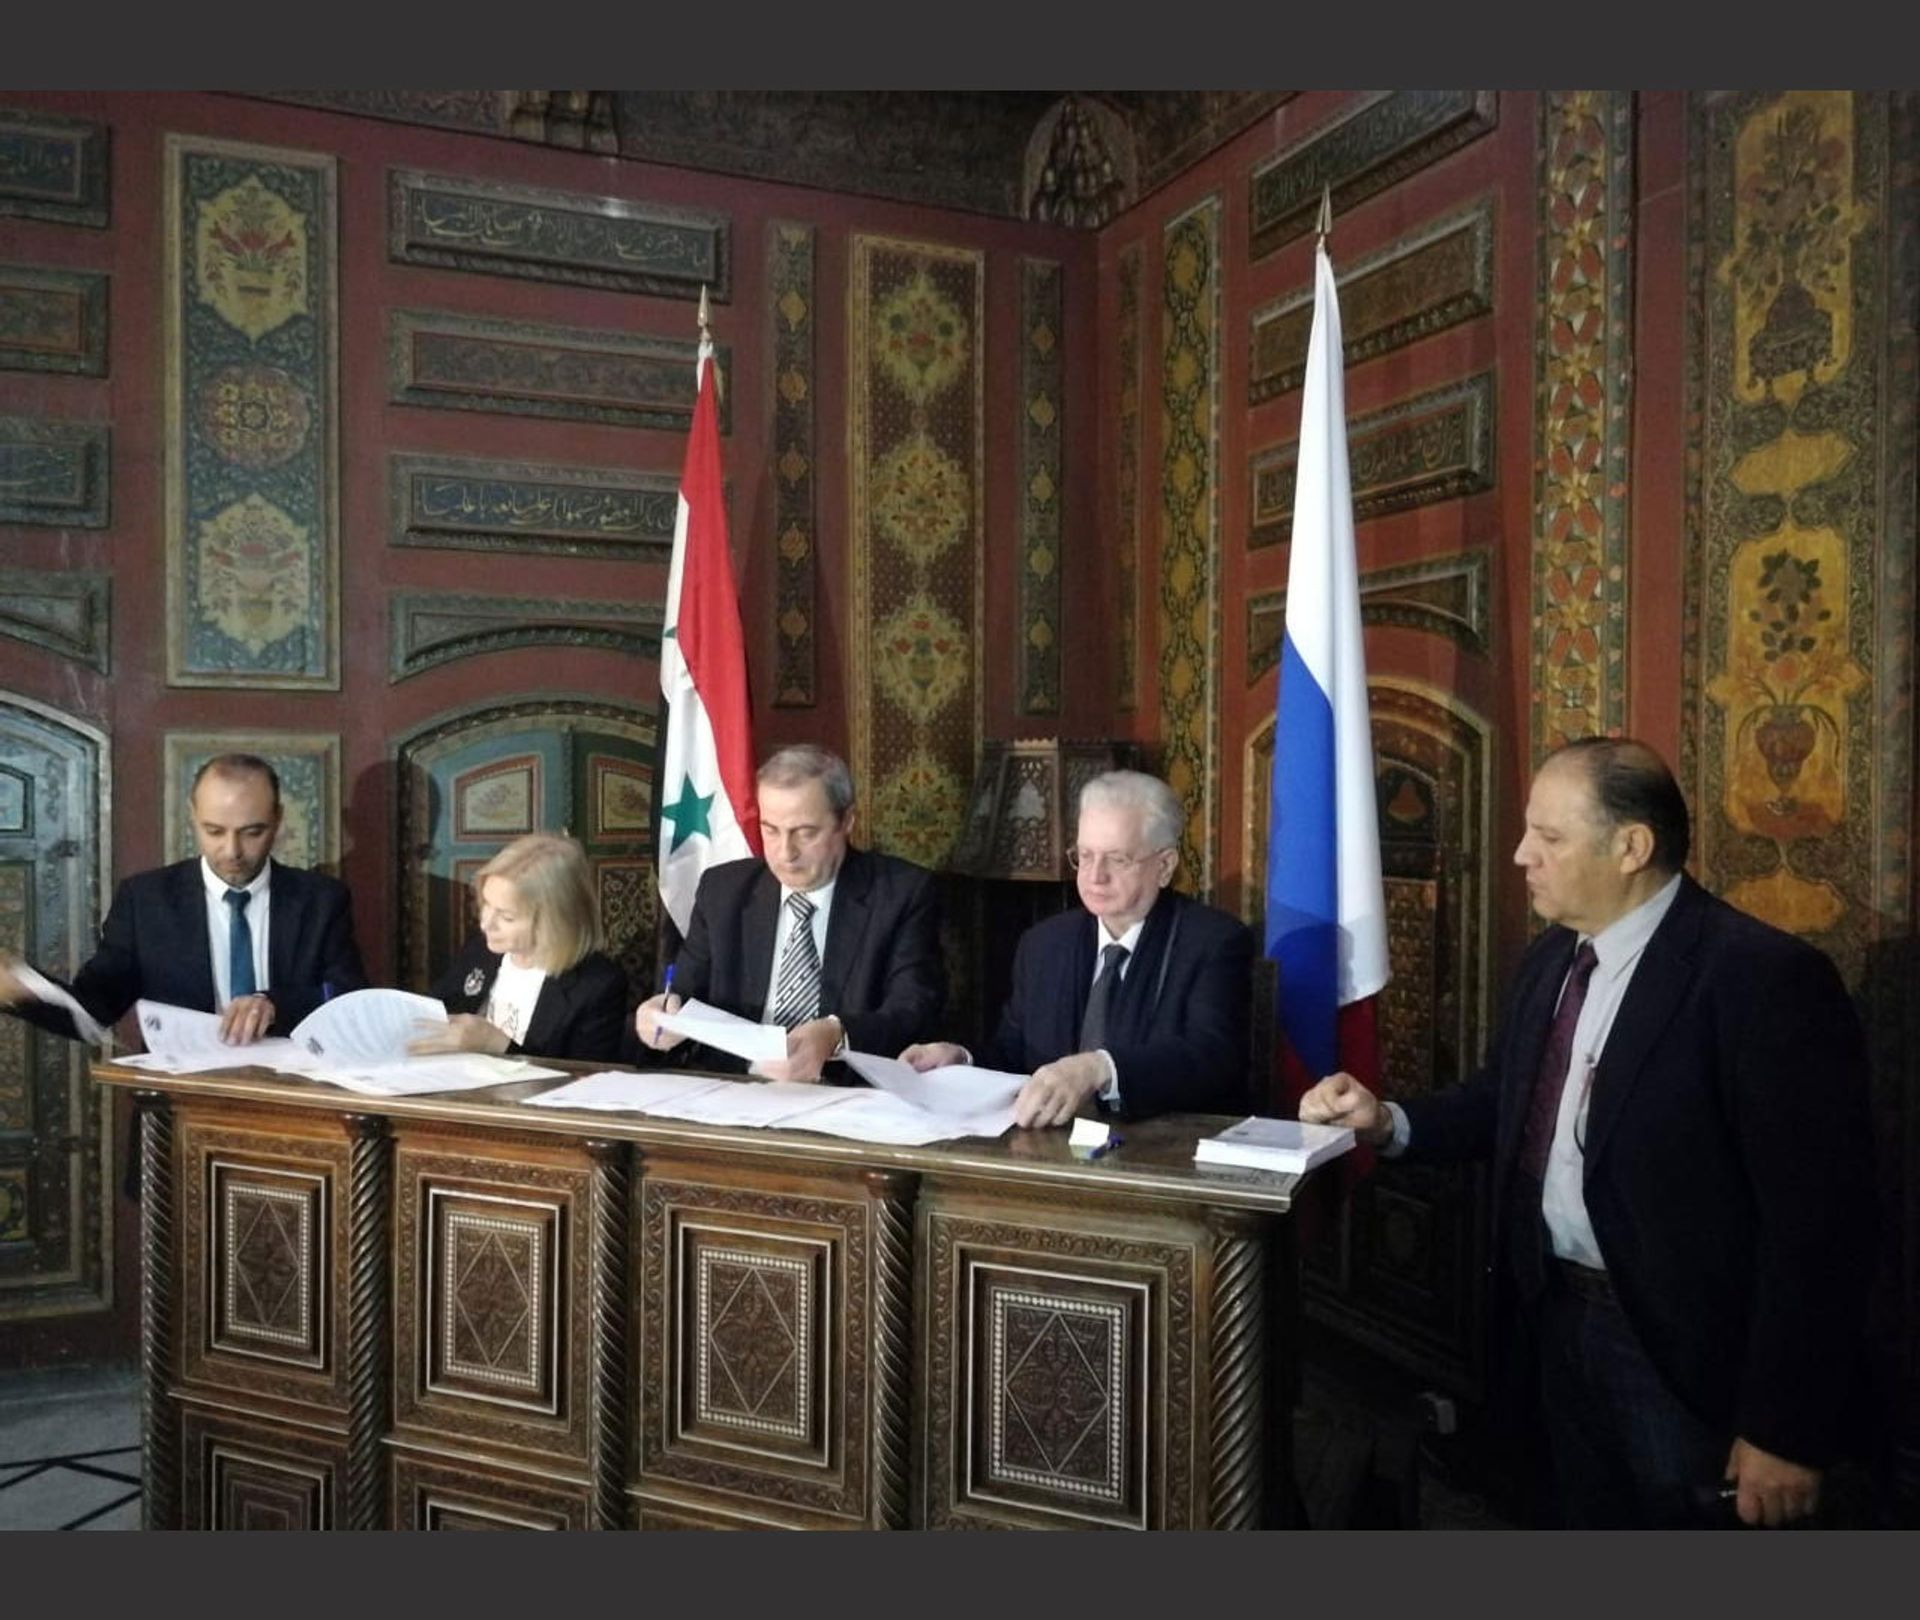 Mahmoud Hammoud and Mikhail Piotrovsky signing the agreement in Damascus © Courtesy of the State Hermitage Museum